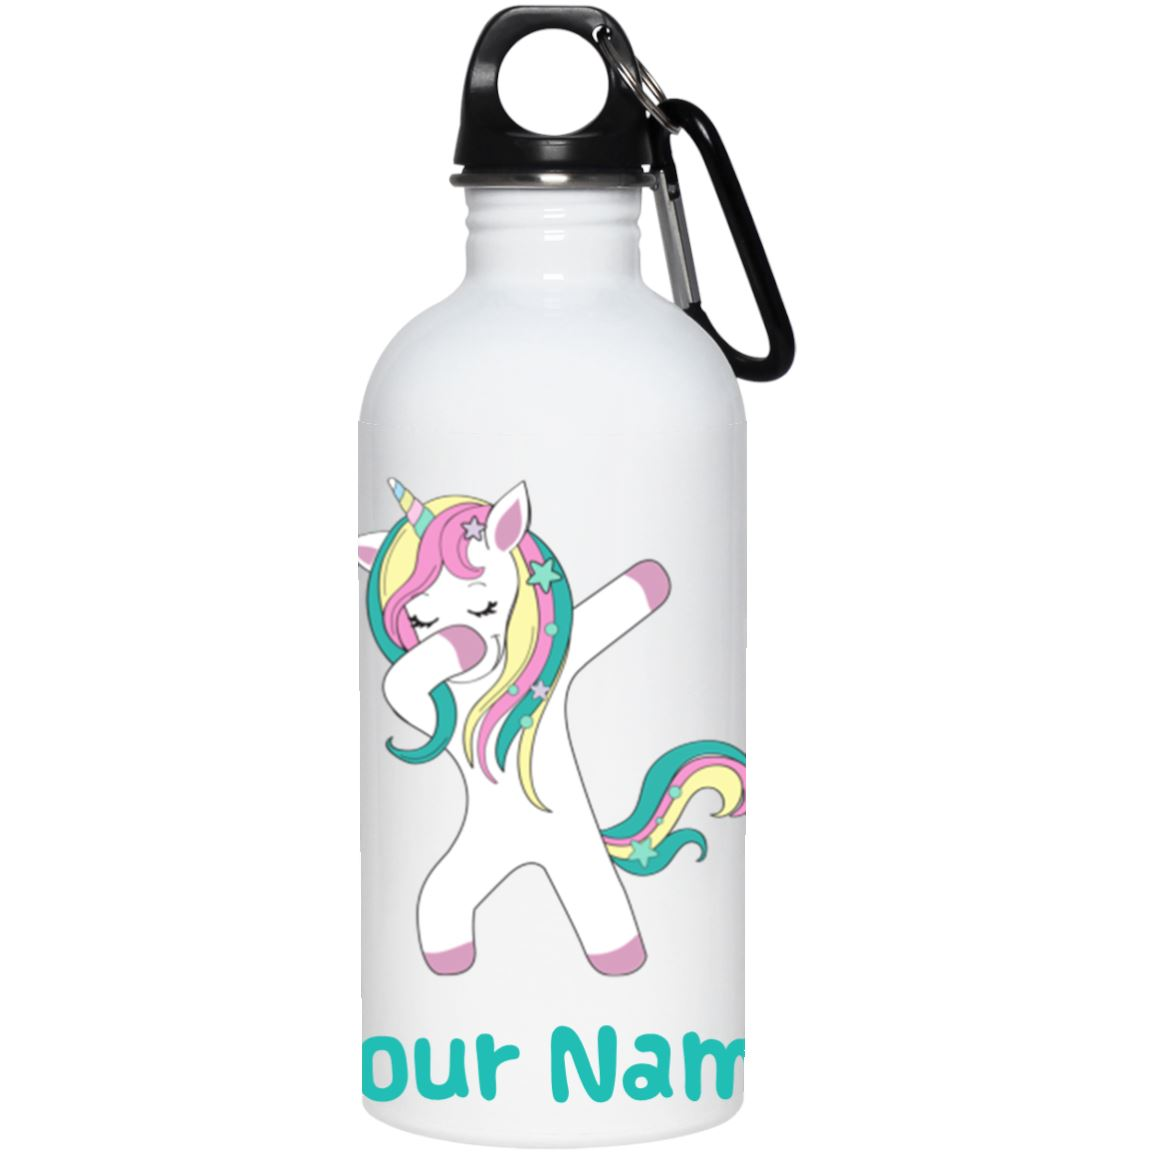 Personalized Dabbing Unicorn Stainless Water Bottle Drinkware One Size